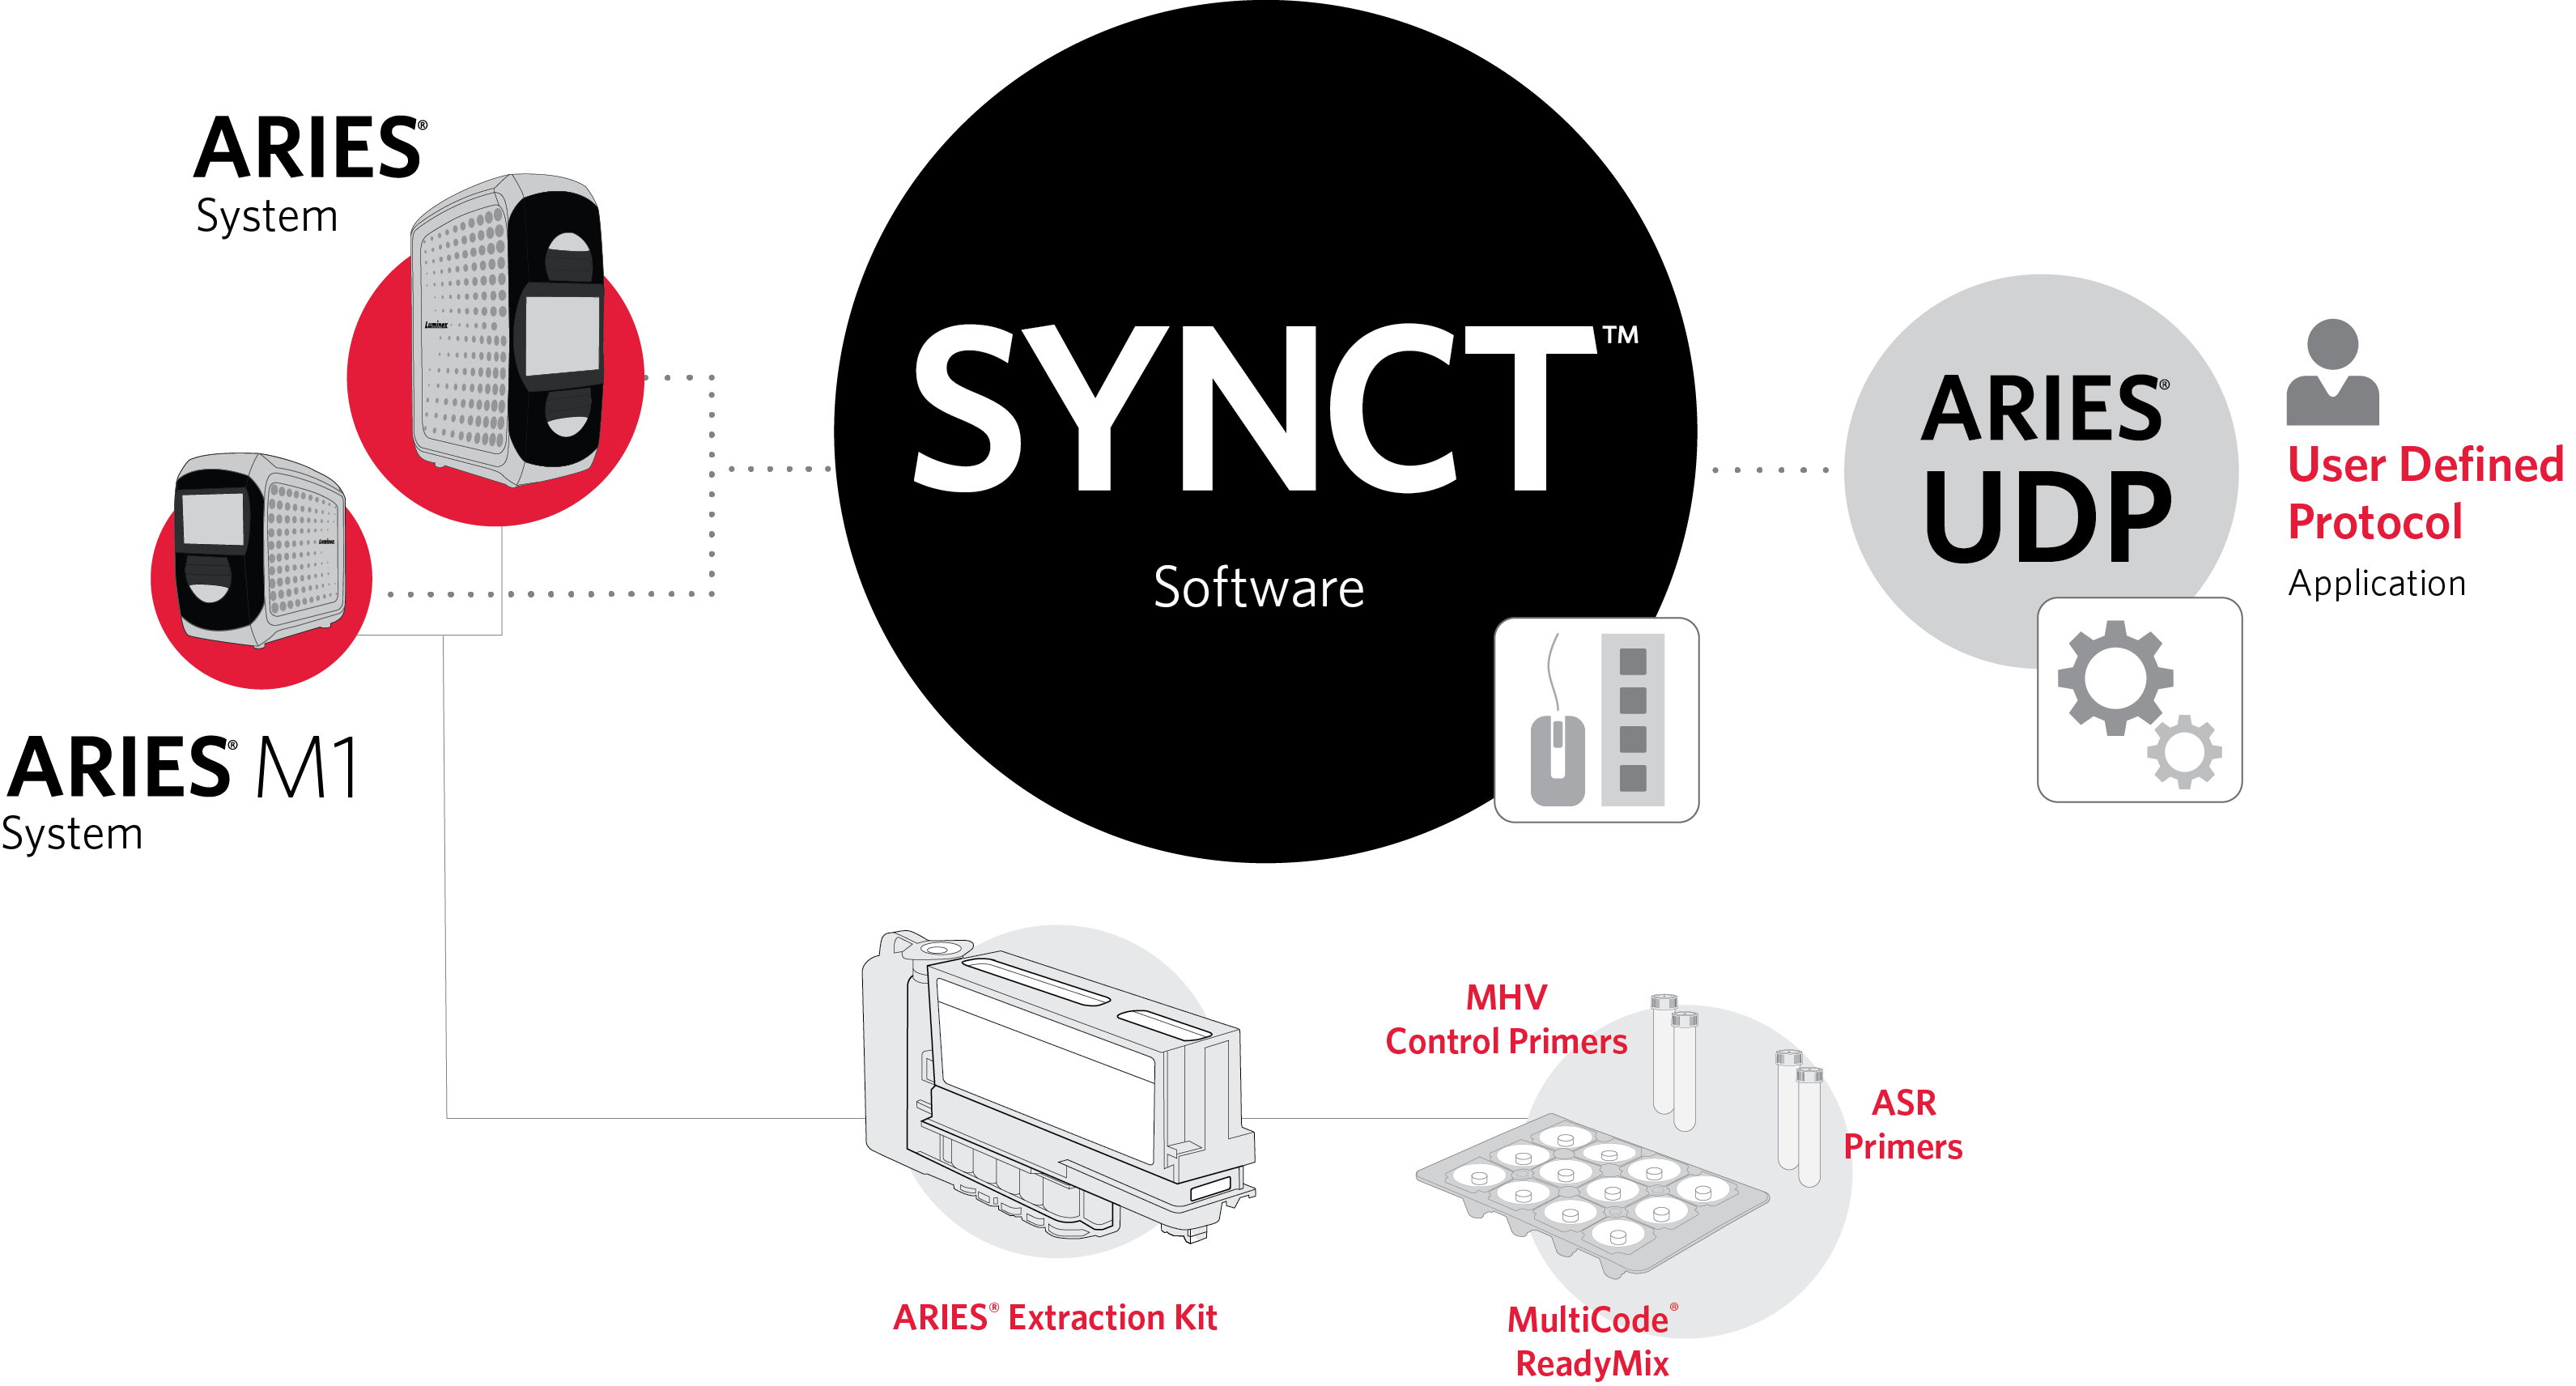 SYNCT Apps: ARIES® User Defined Protocol